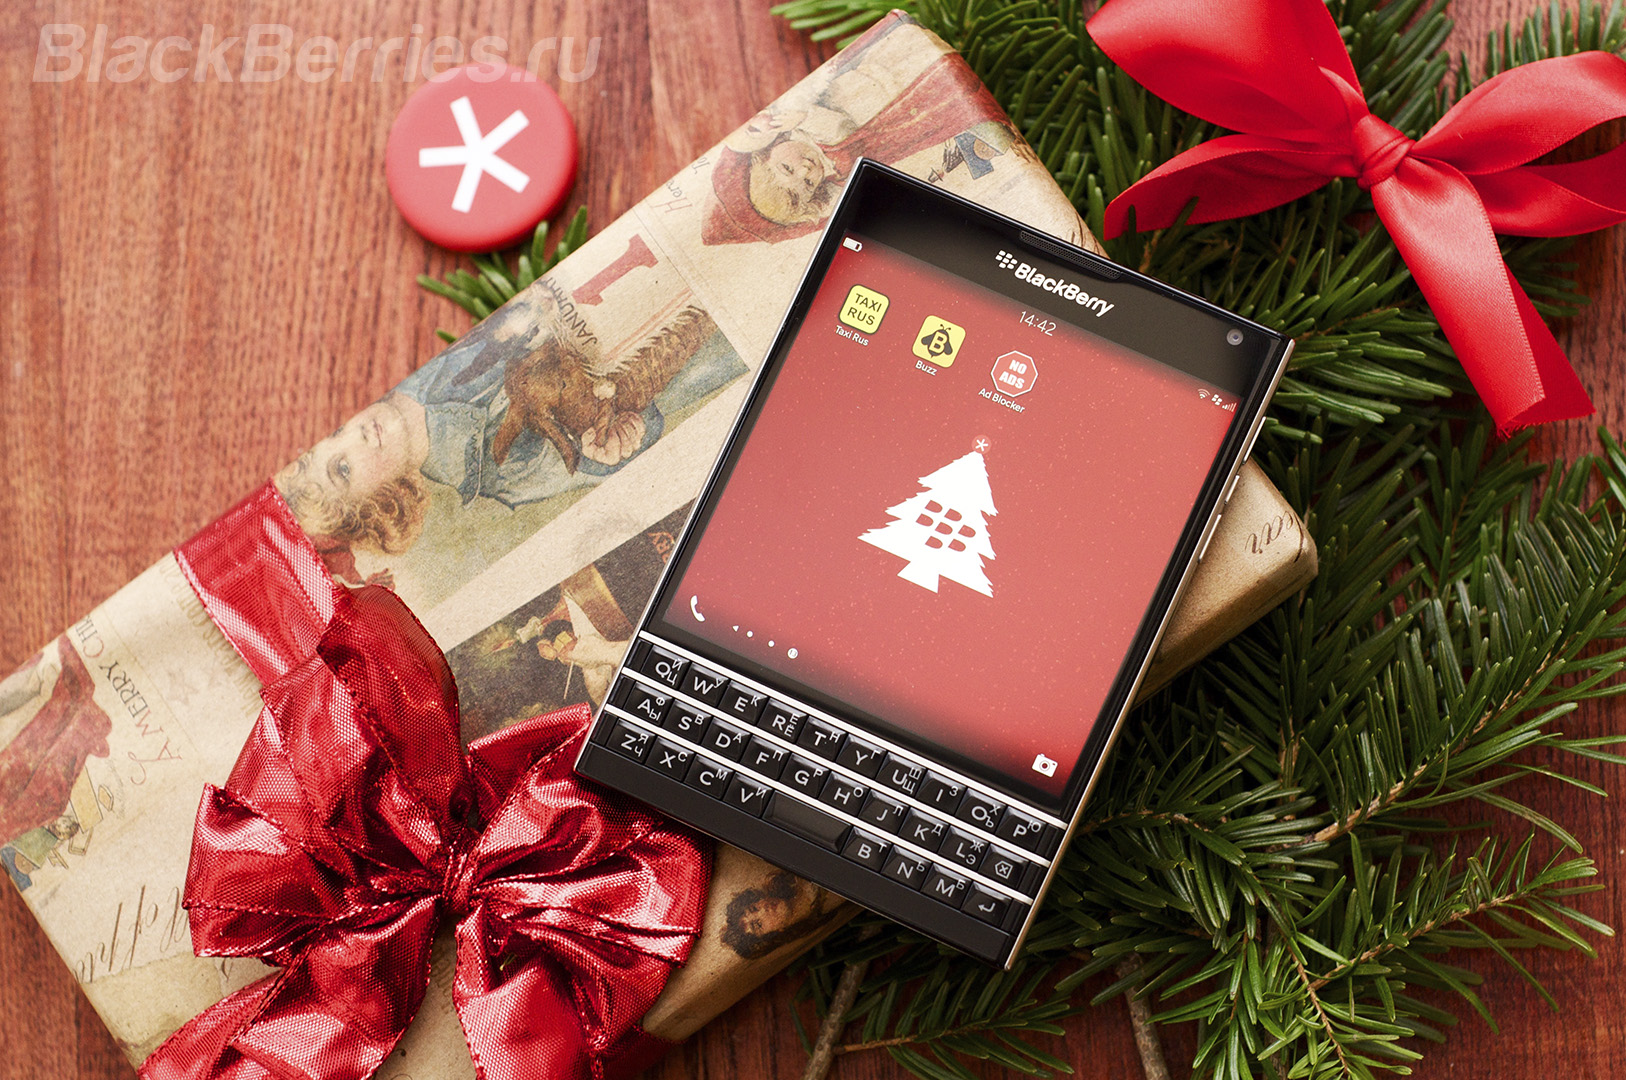 BlackBerry-New-Year-Apps-07